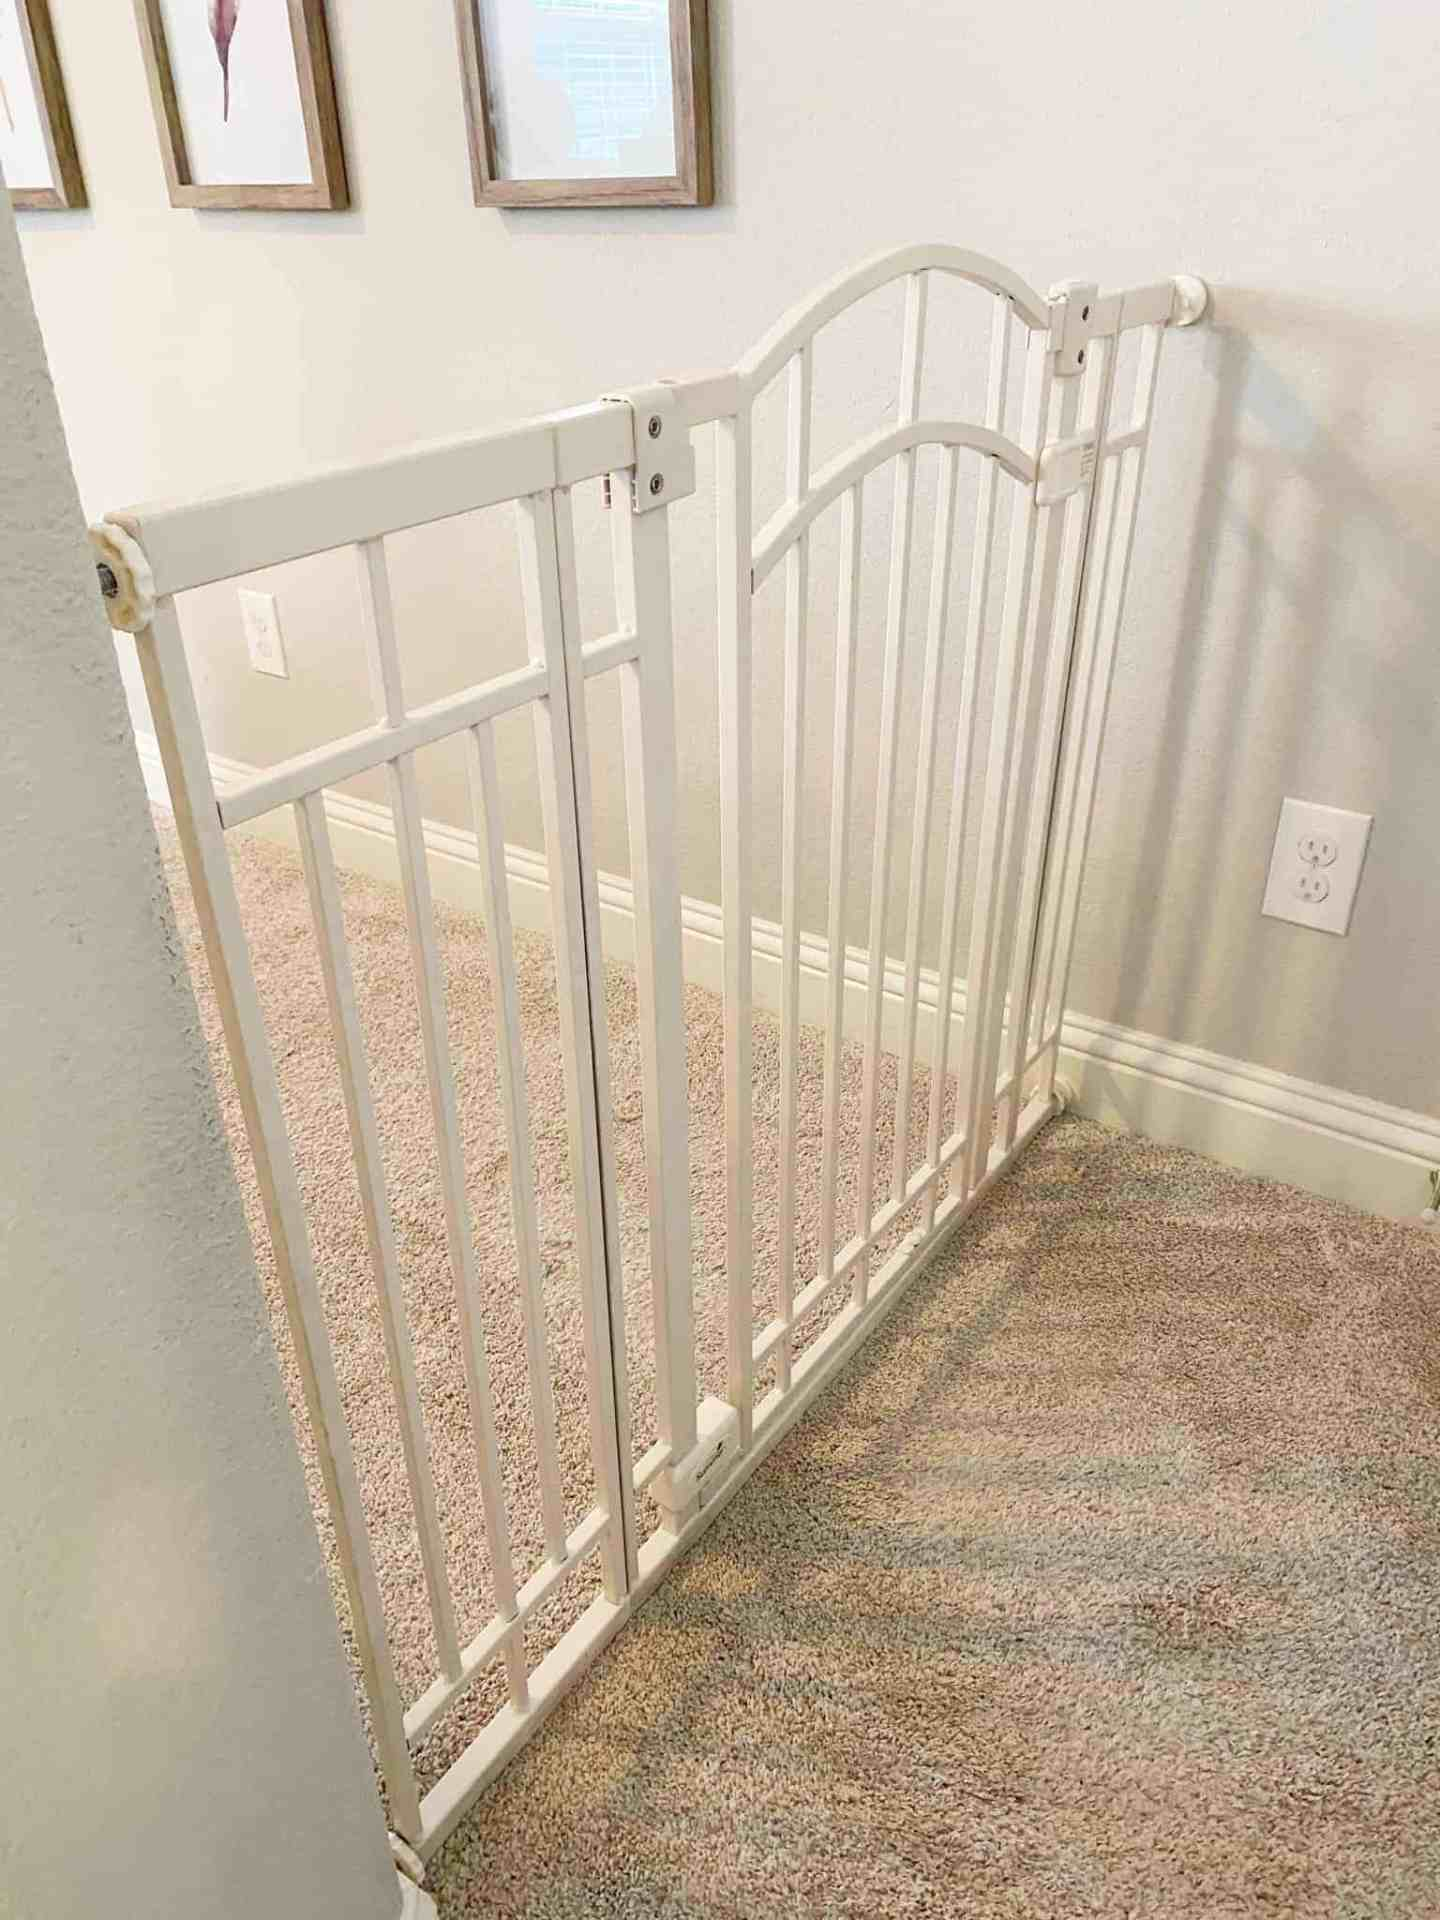 Baby Gate With Only One Wall : Gates, Difficult, Stairs, Pineapple, House, Rules